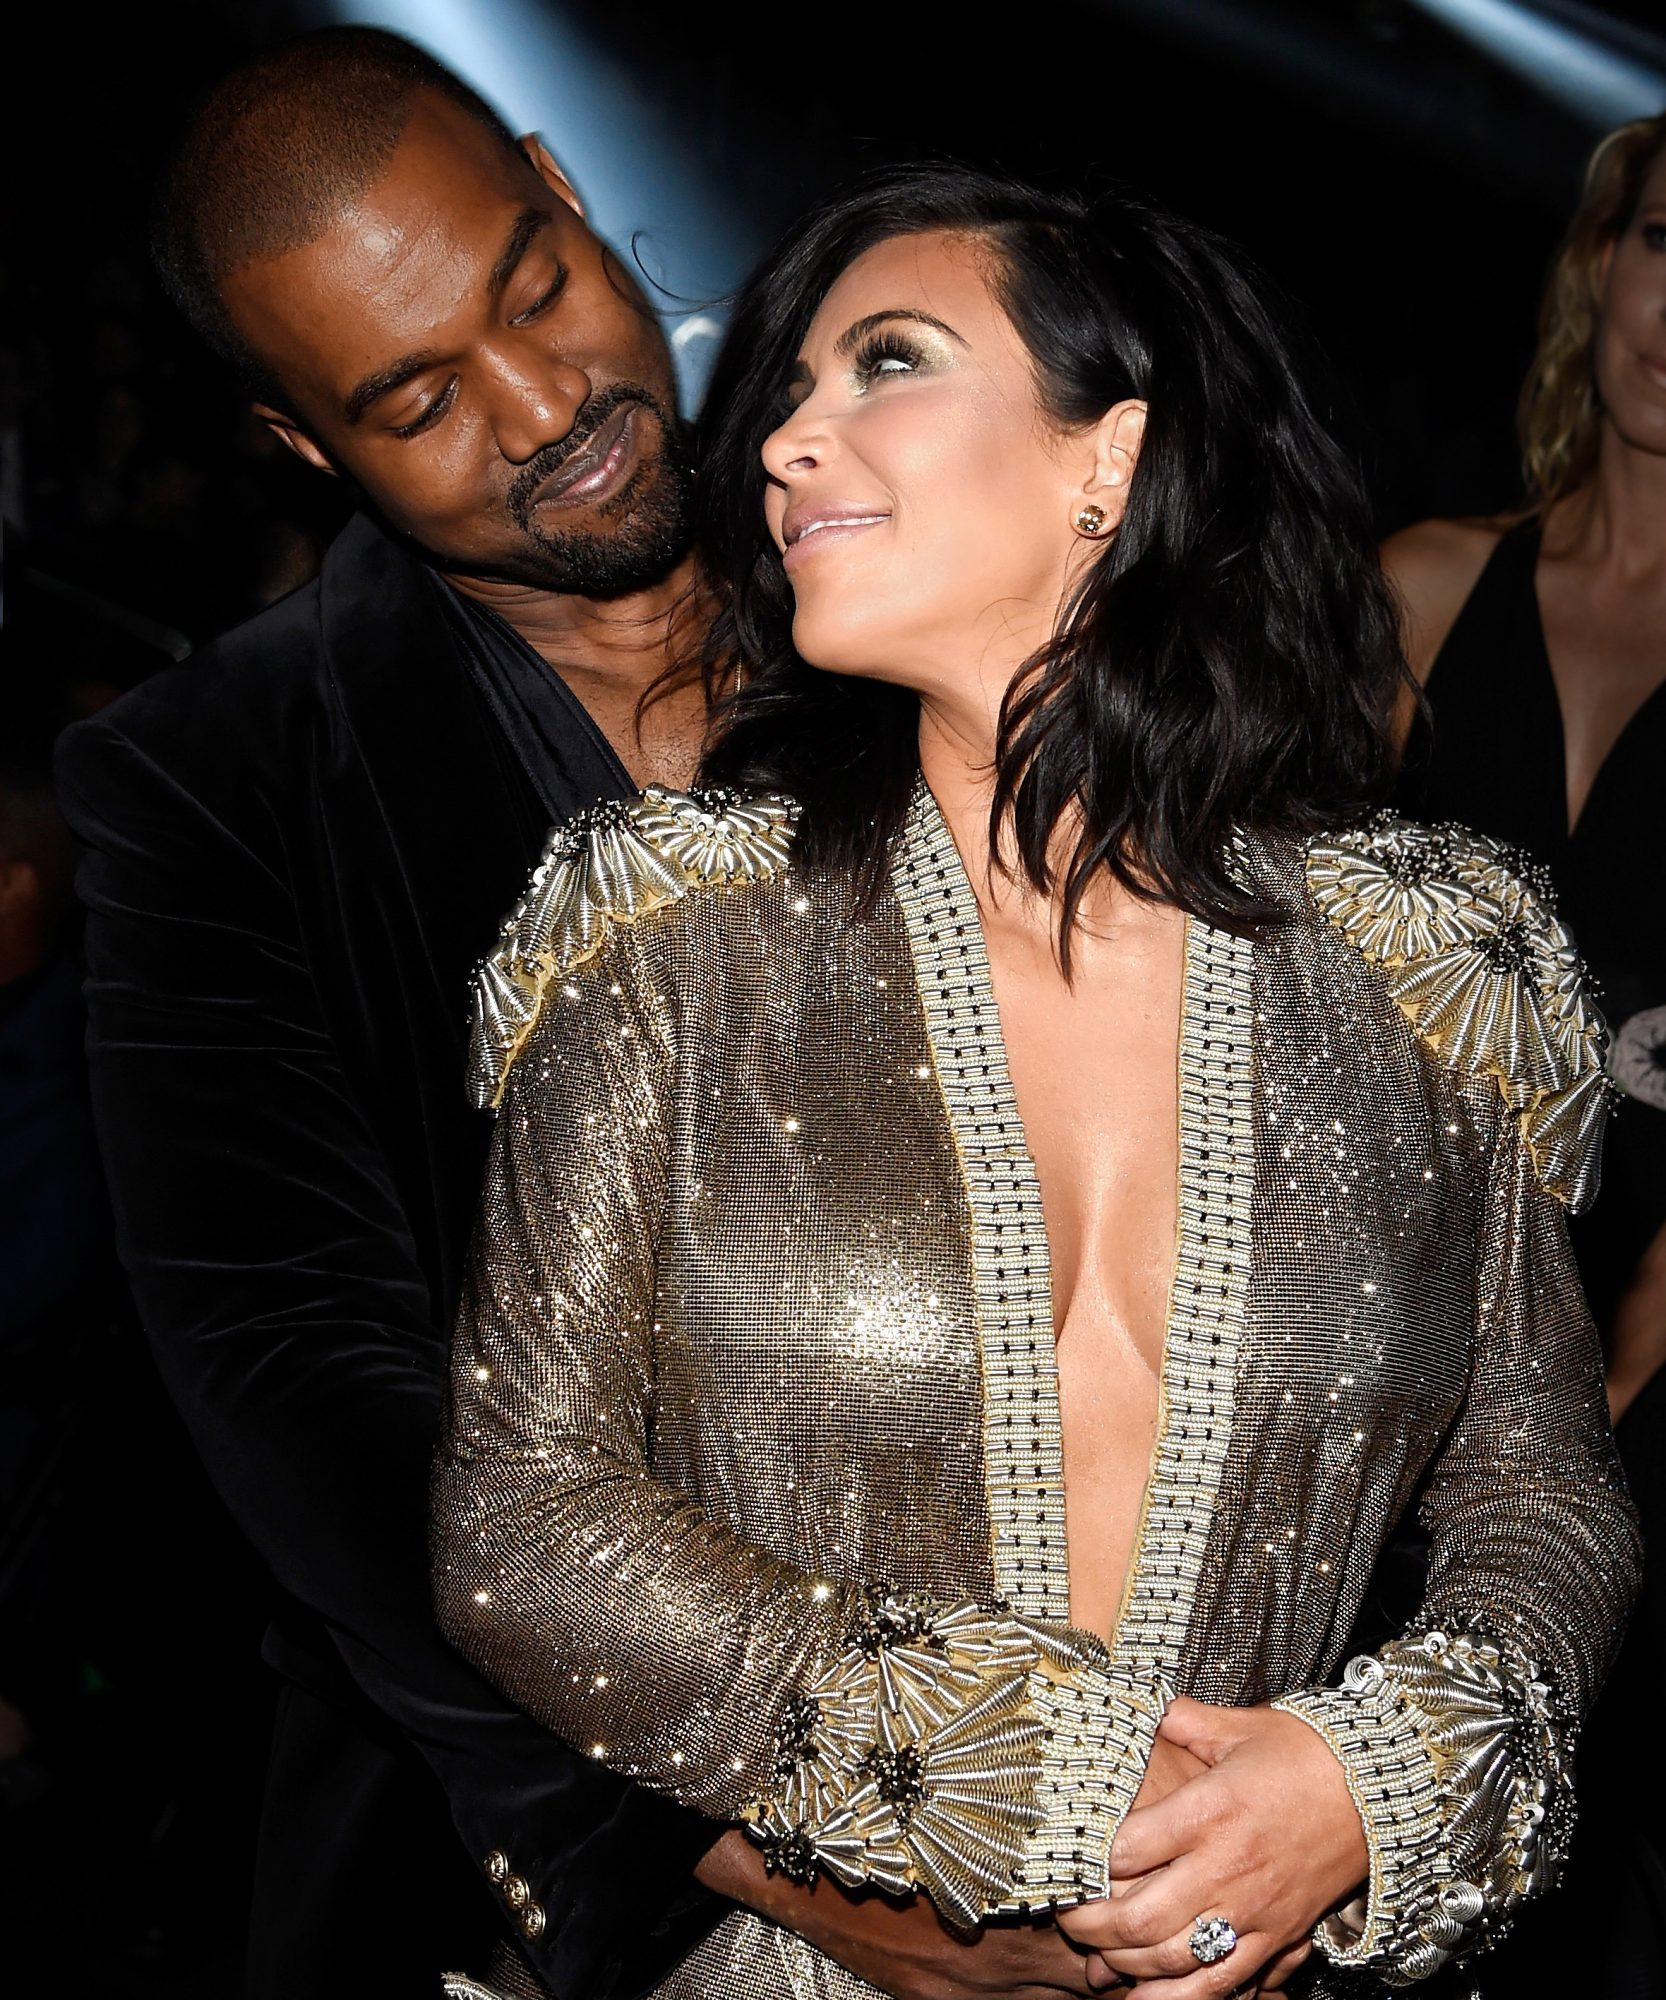 Happy Second Anniversary Kimye! 5 Lavish Gifts We'd Give the Couple